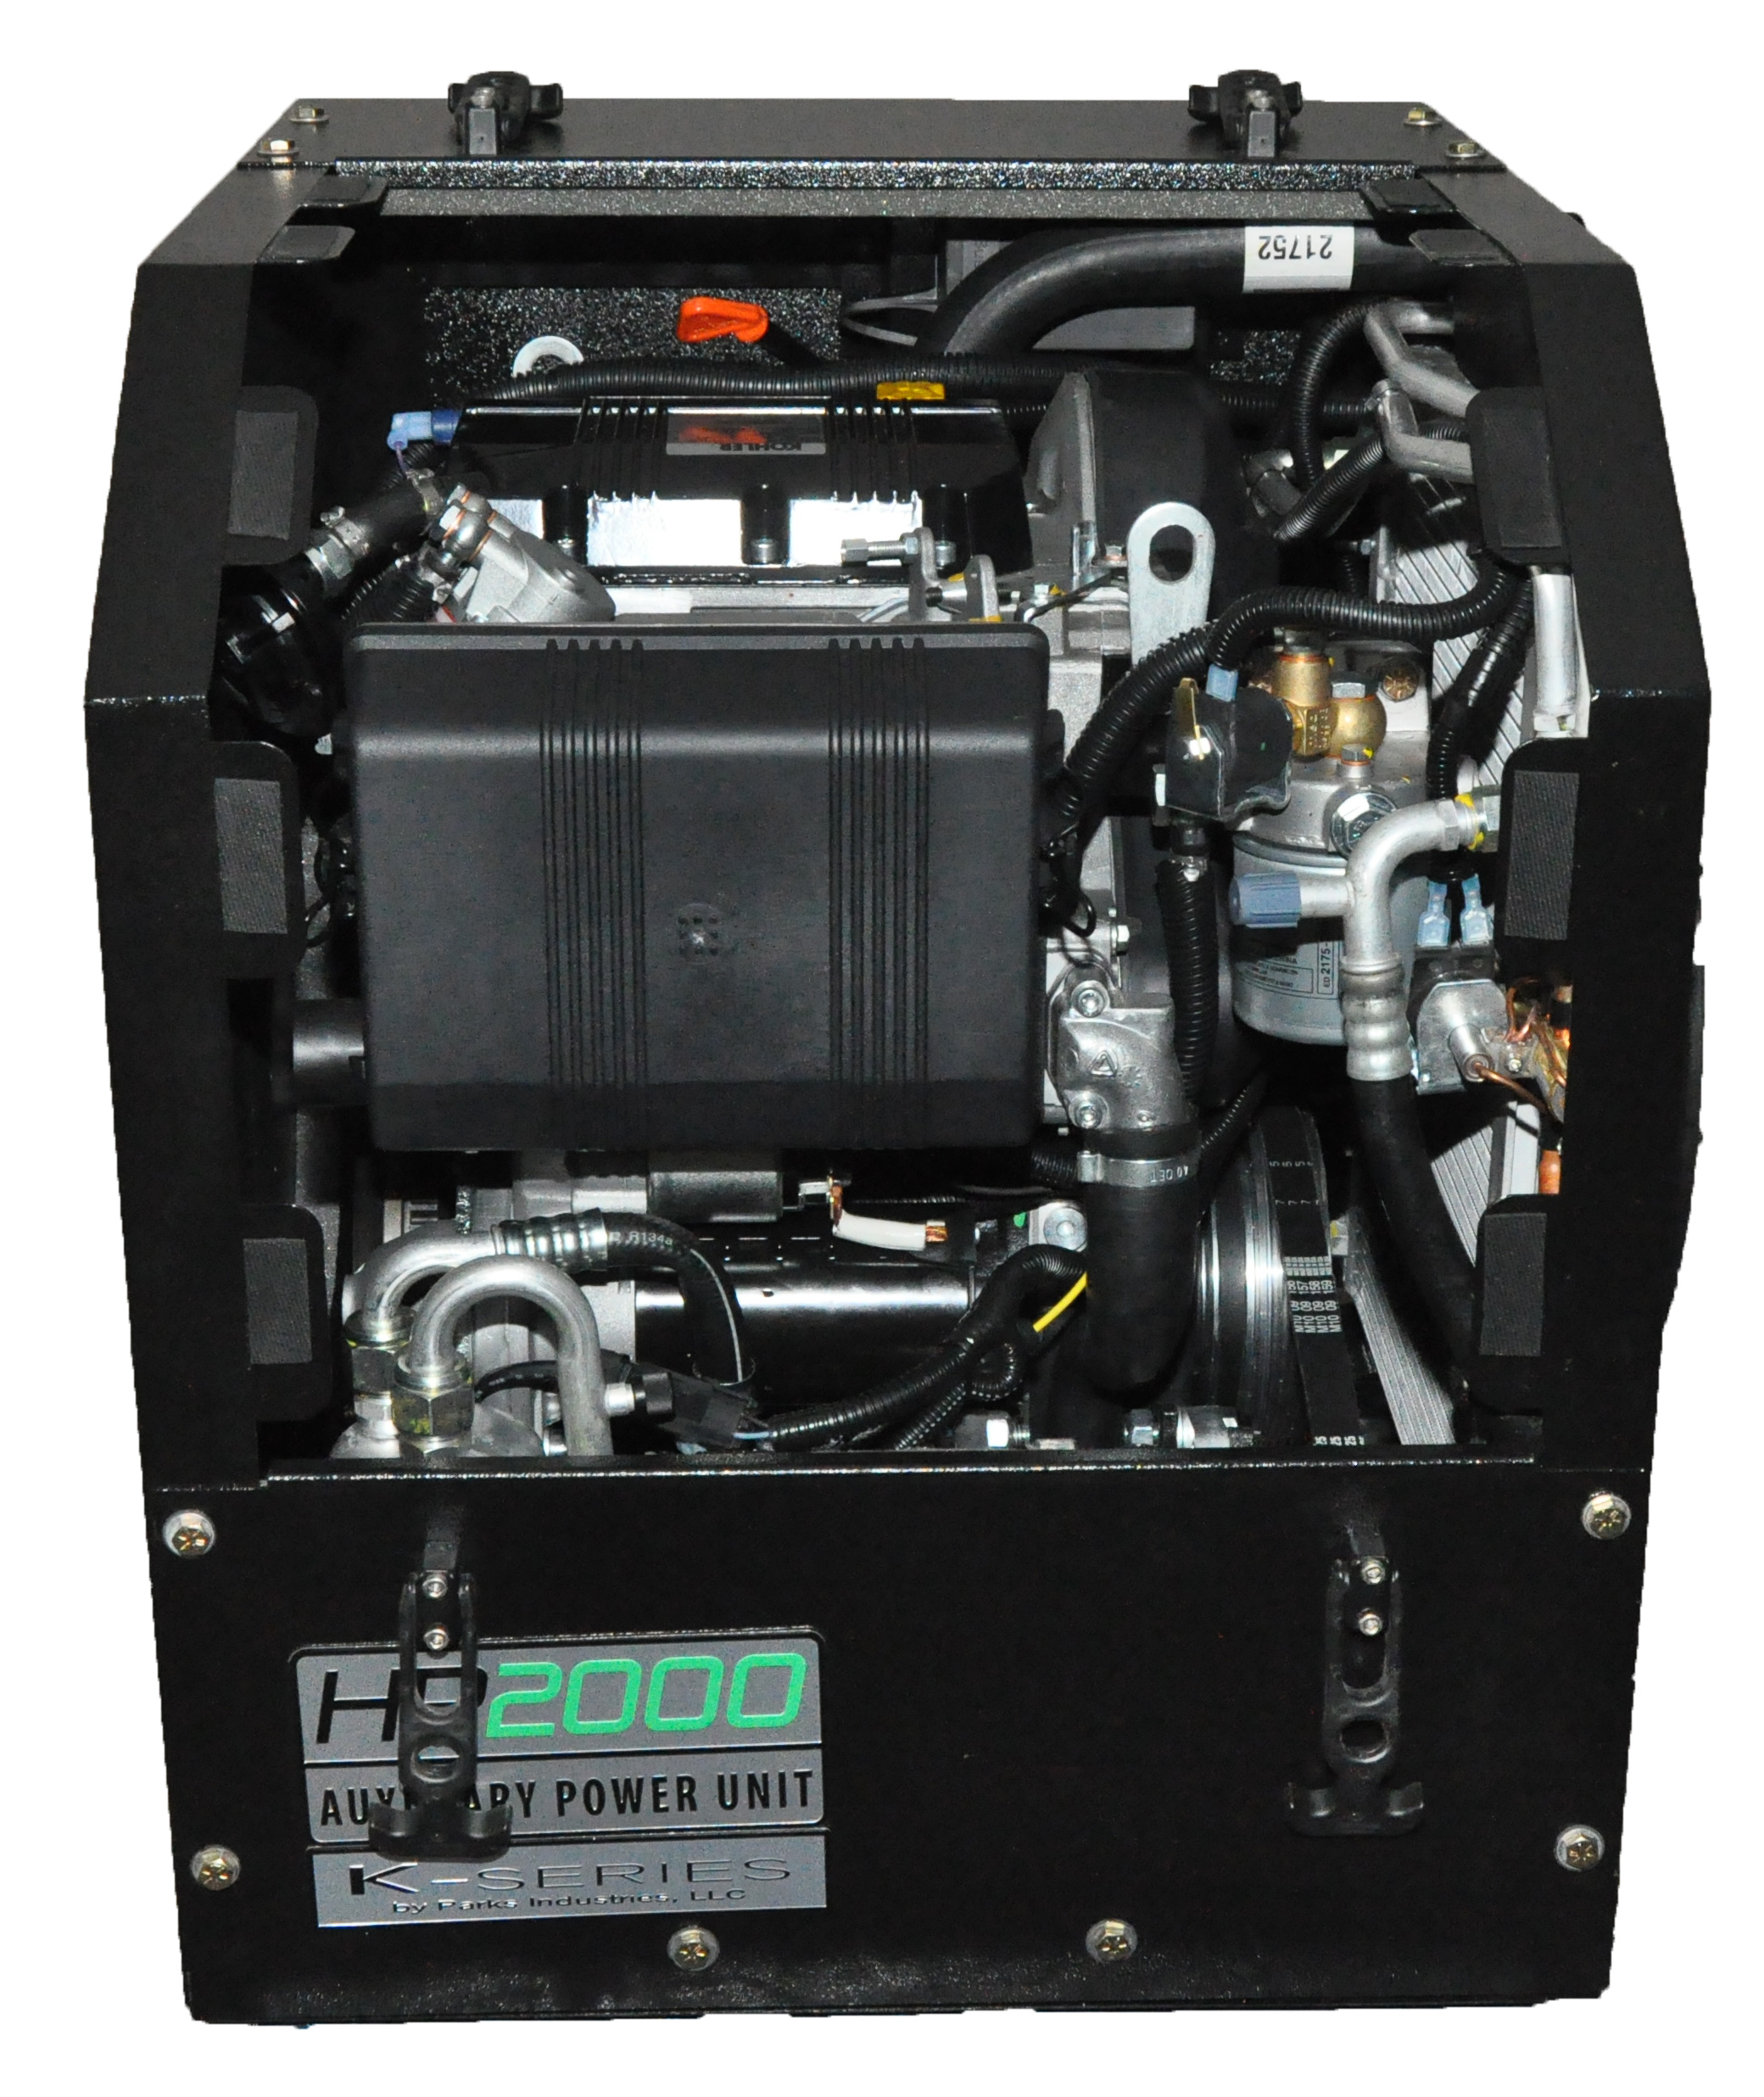 K Series Angle No Lid 1 hp2000 auxillary power unit truck apu review dynasys apu wiring diagram at bayanpartner.co